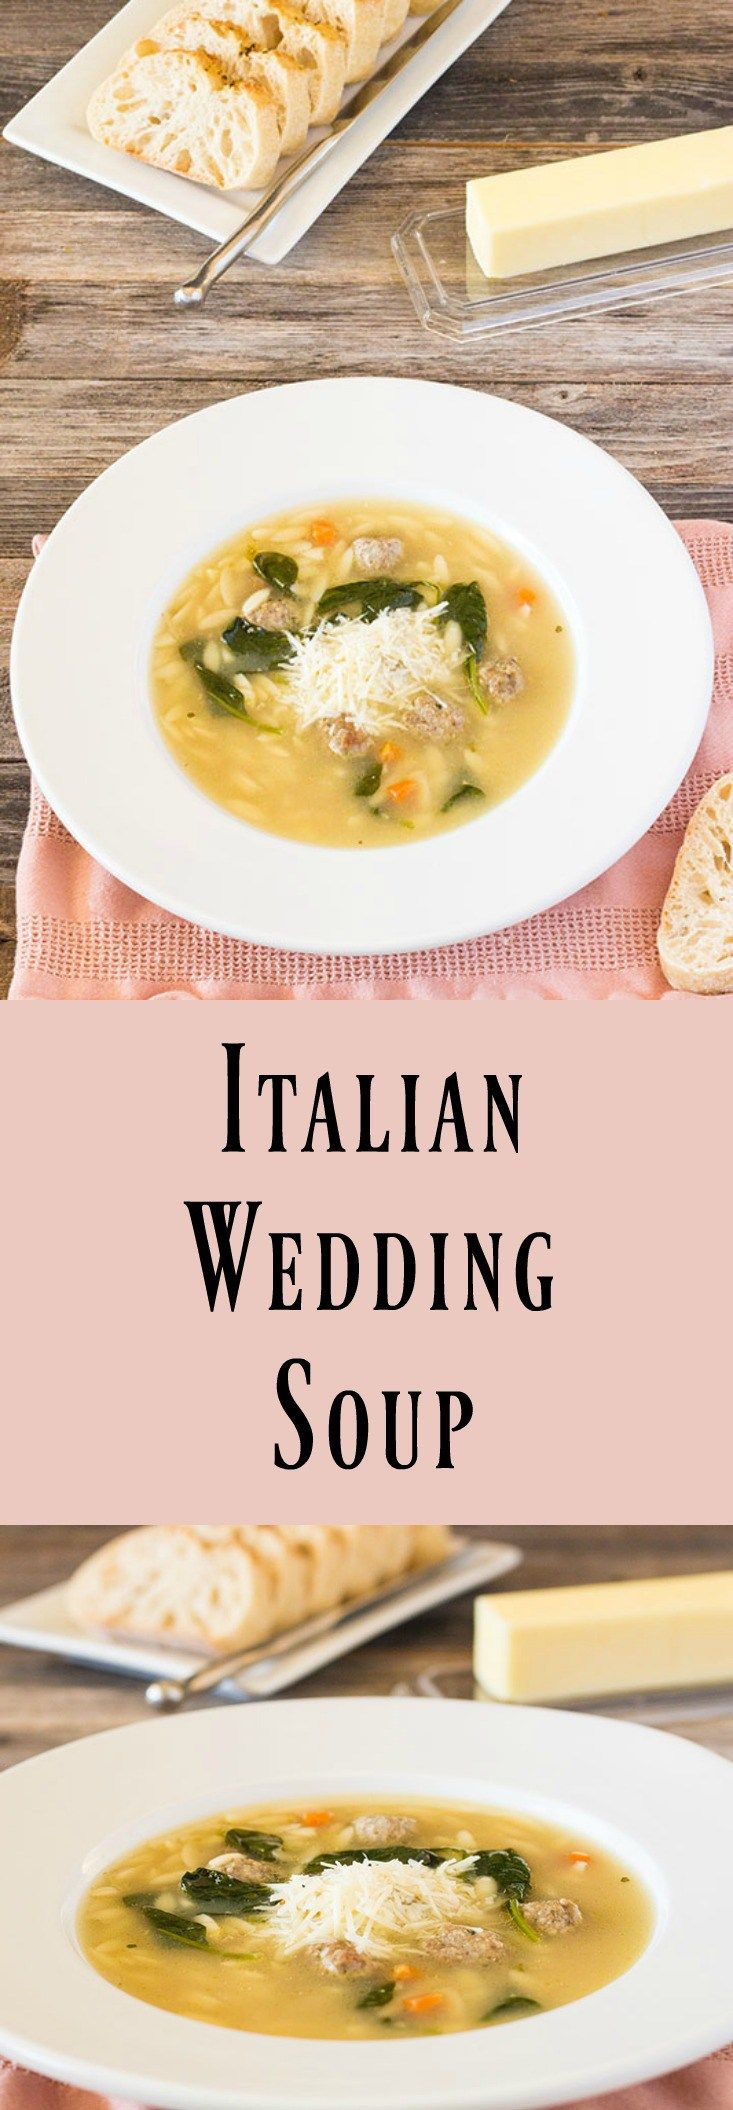 Italian Wedding Soup | Recipe | Italian wedding soup ...